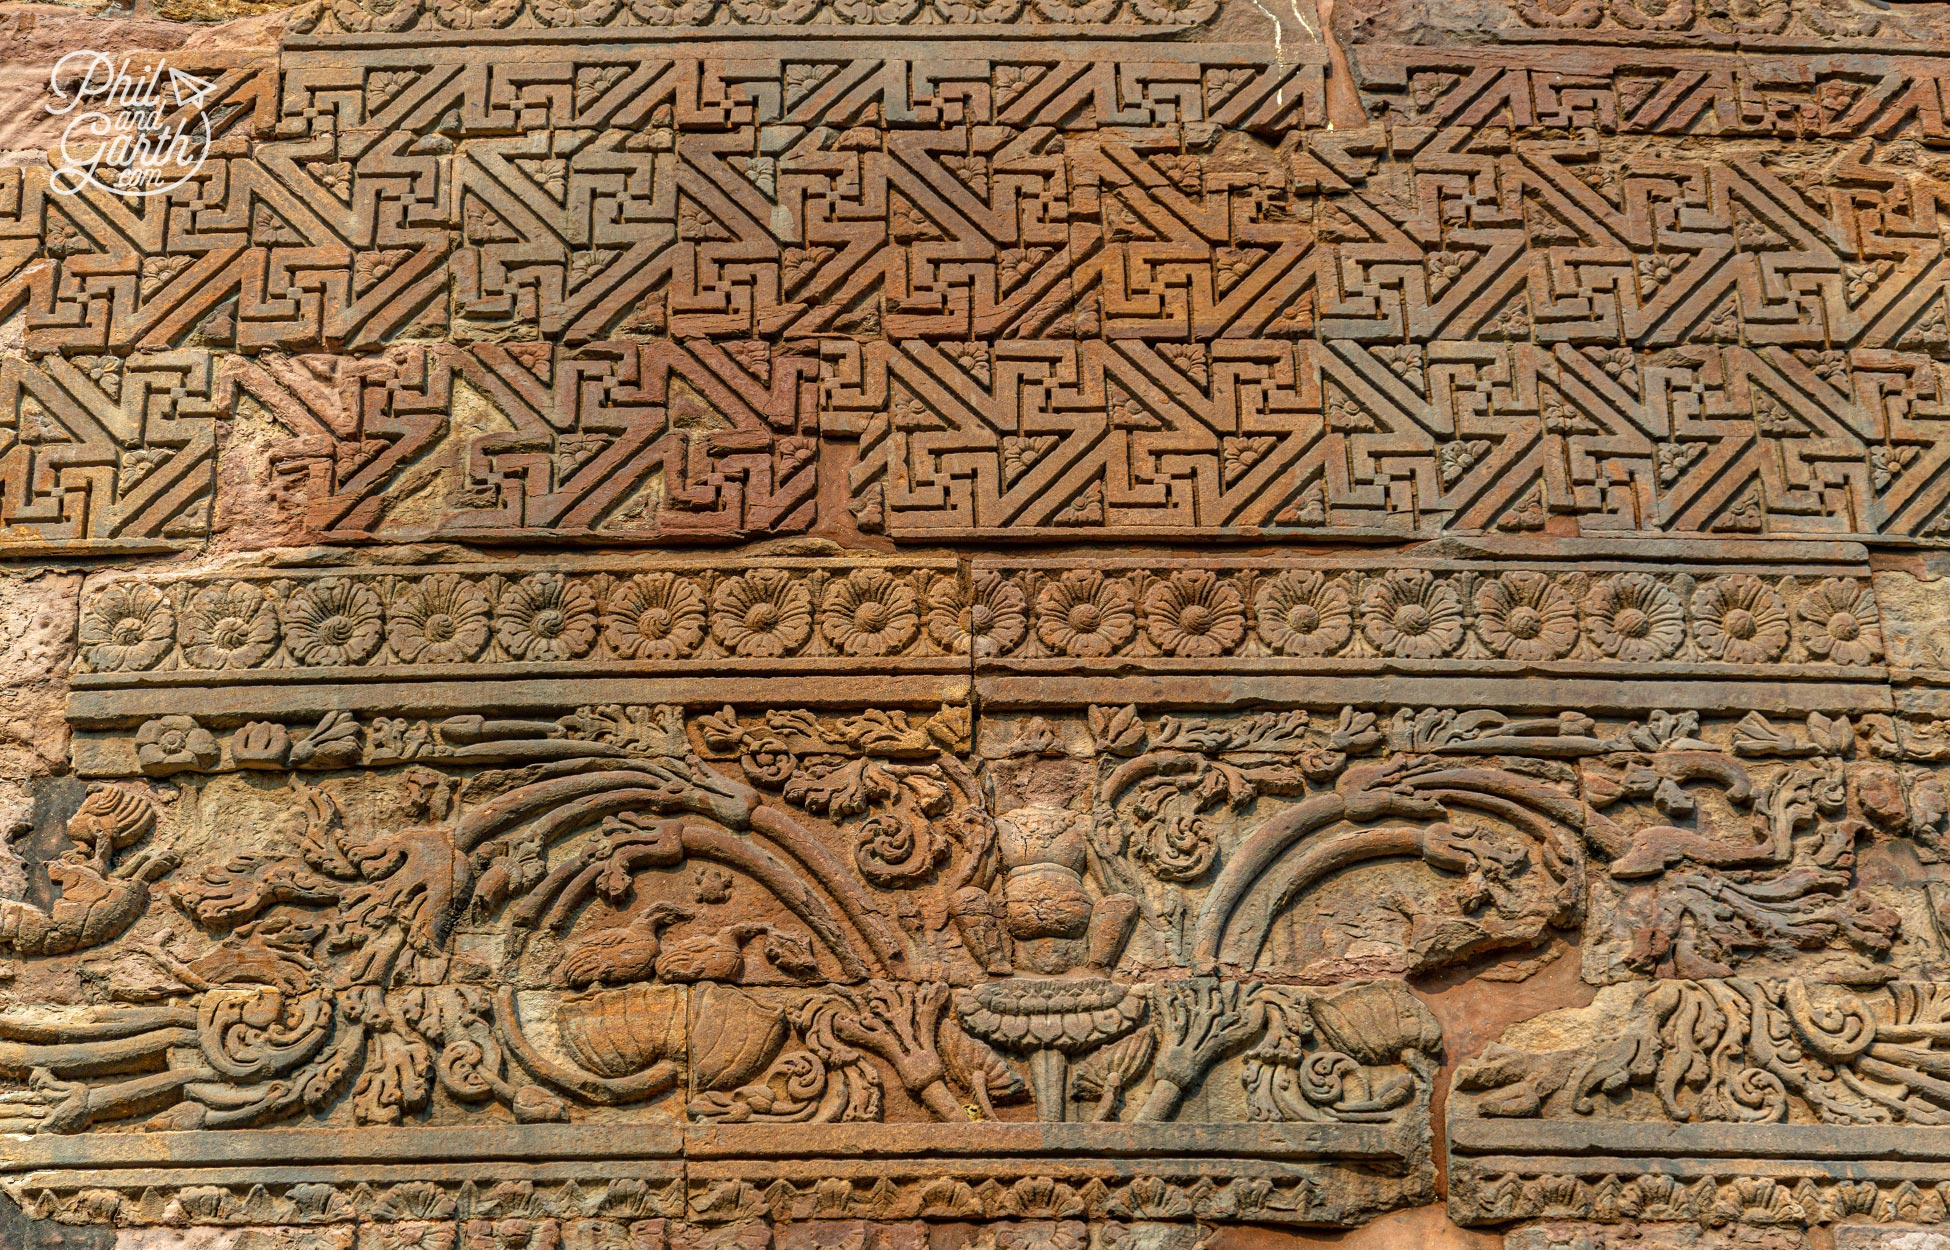 The Dhamek Stupa's carvings include flowers,birds and people